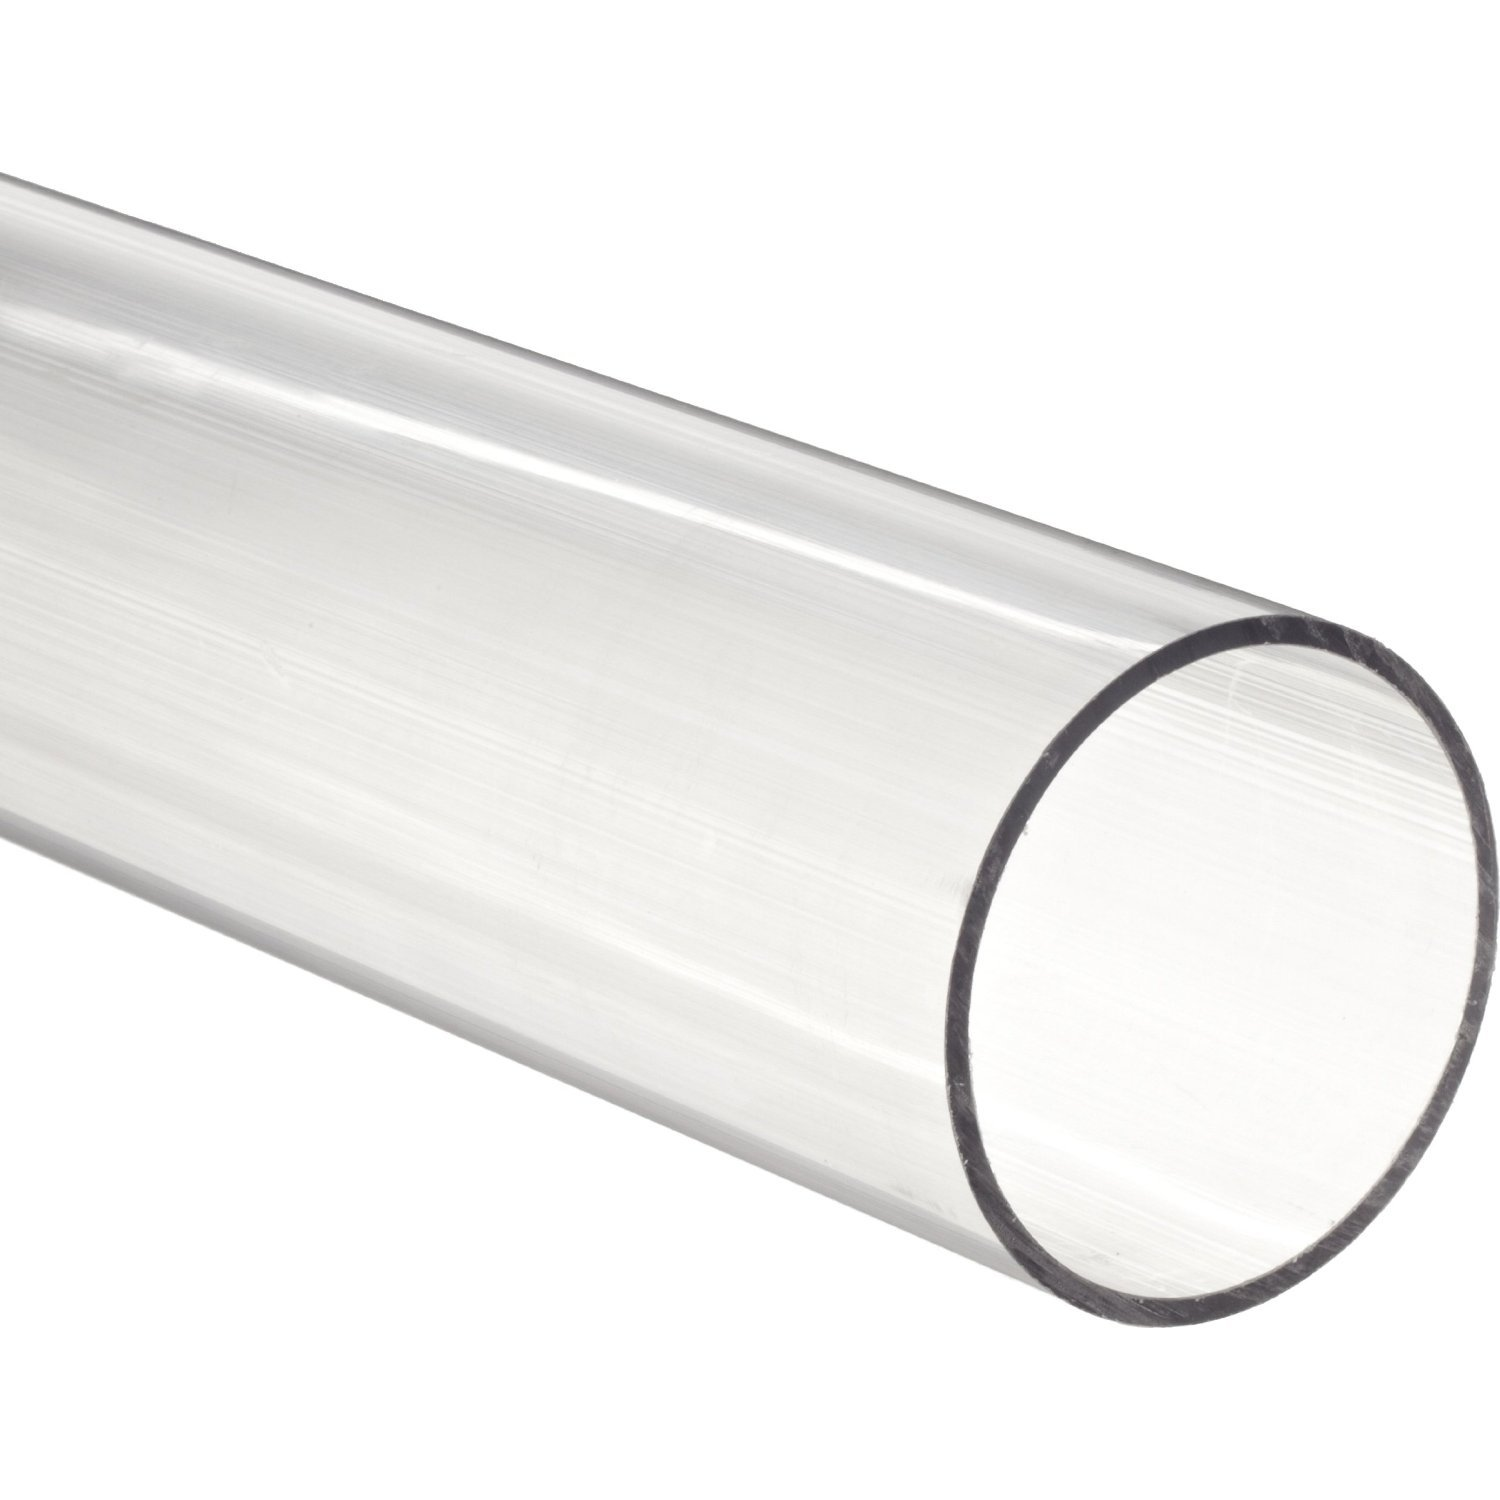 Clear 11-7//8 Polycarbonate Round Tube 2-1//4 ID x 2-1//2 OD x 1//8 Wall